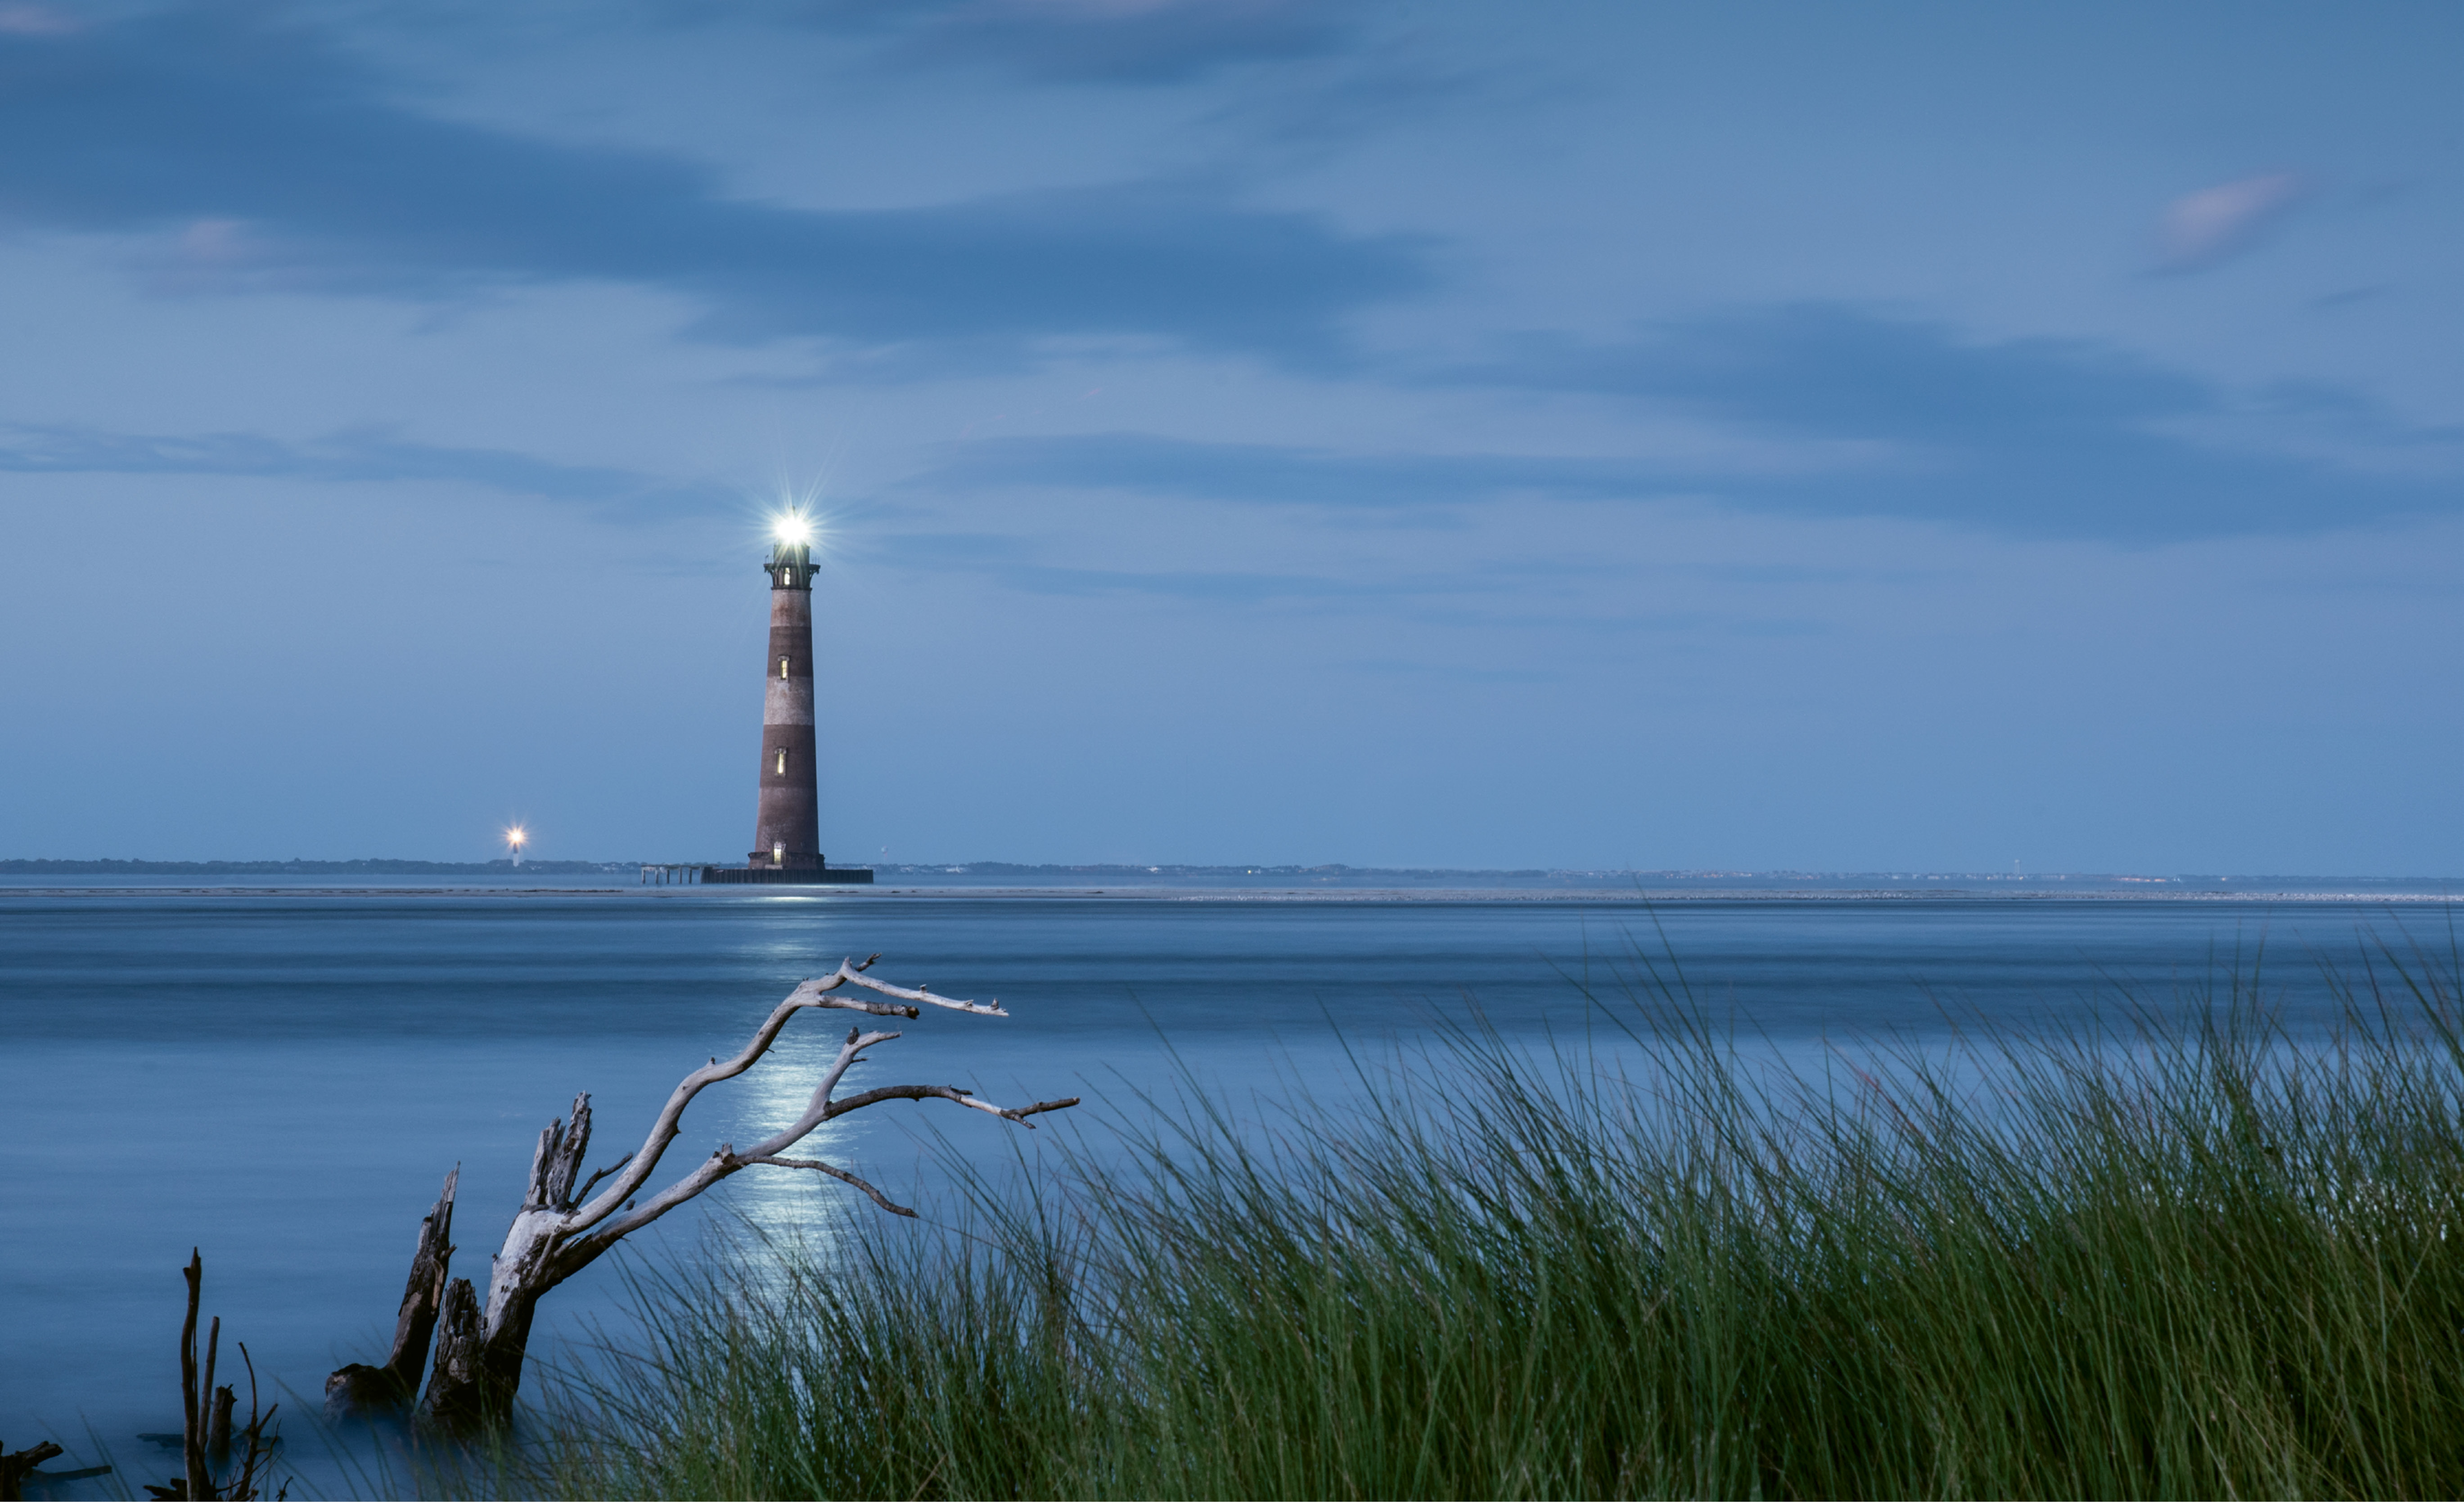 Two Lights Burning by Charles Hooker  {Professional category} - The re-illumination of the Morris Island Lighthouse on October 1, 2016